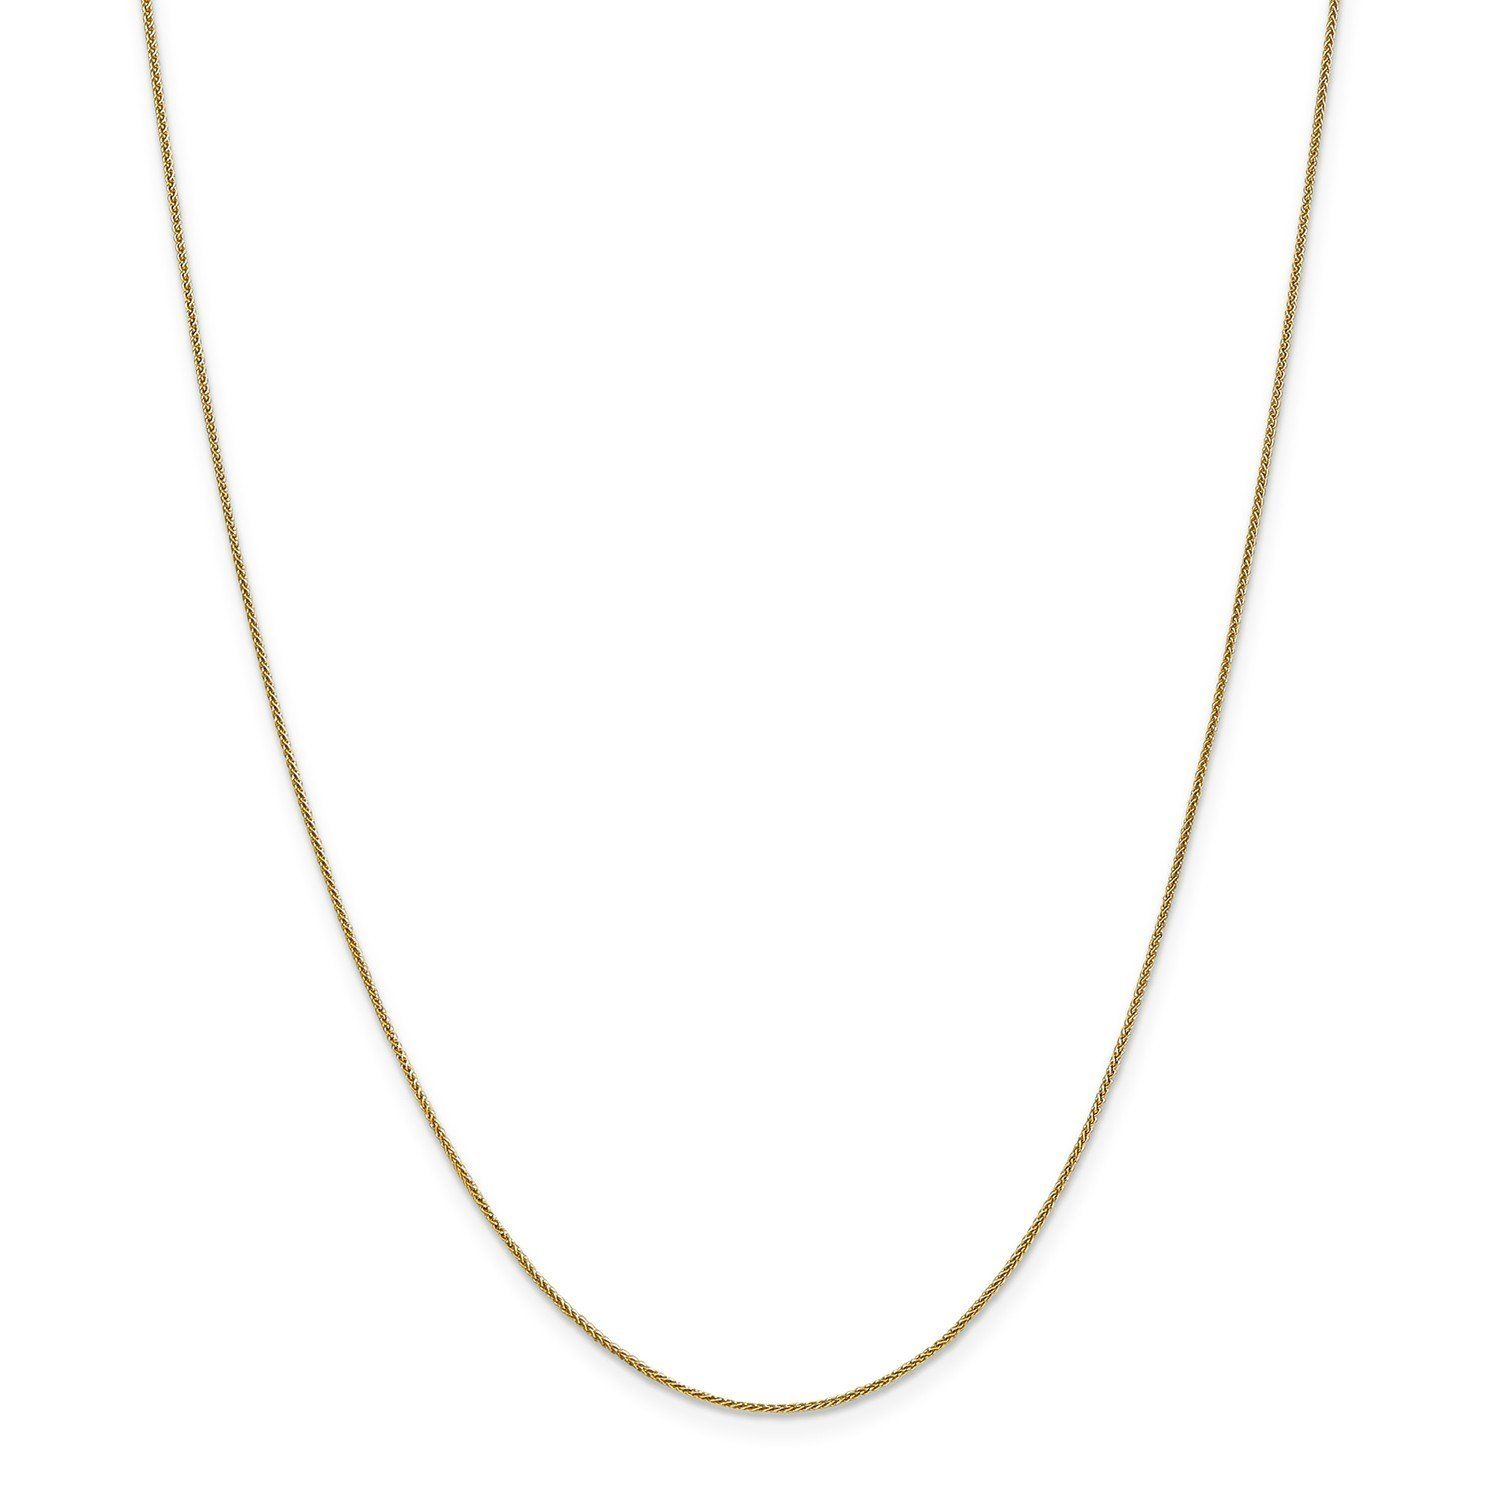 Bar Necklace Leslies Real 14kt Yellow Gold Polished with 1in ext